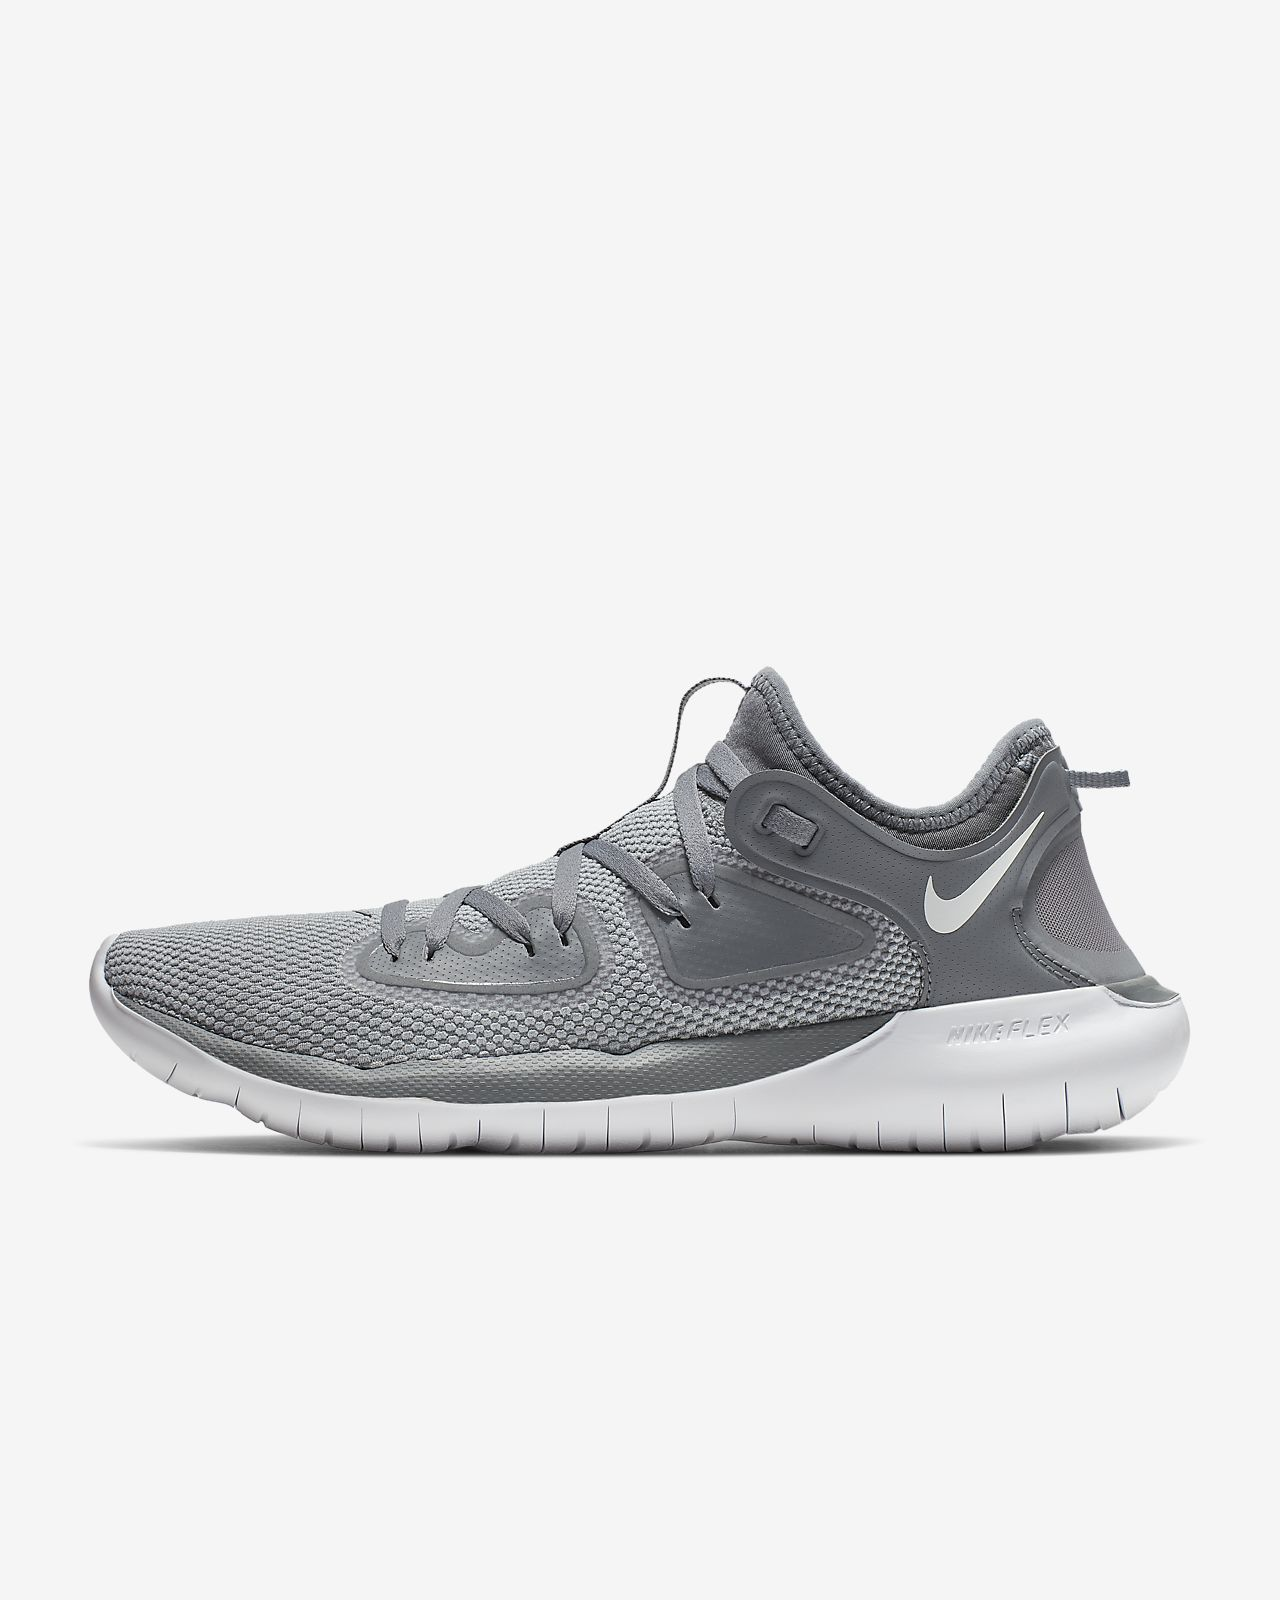 5465276fefd0 Nike Flex RN 2019 Men s Running Shoe. Nike.com